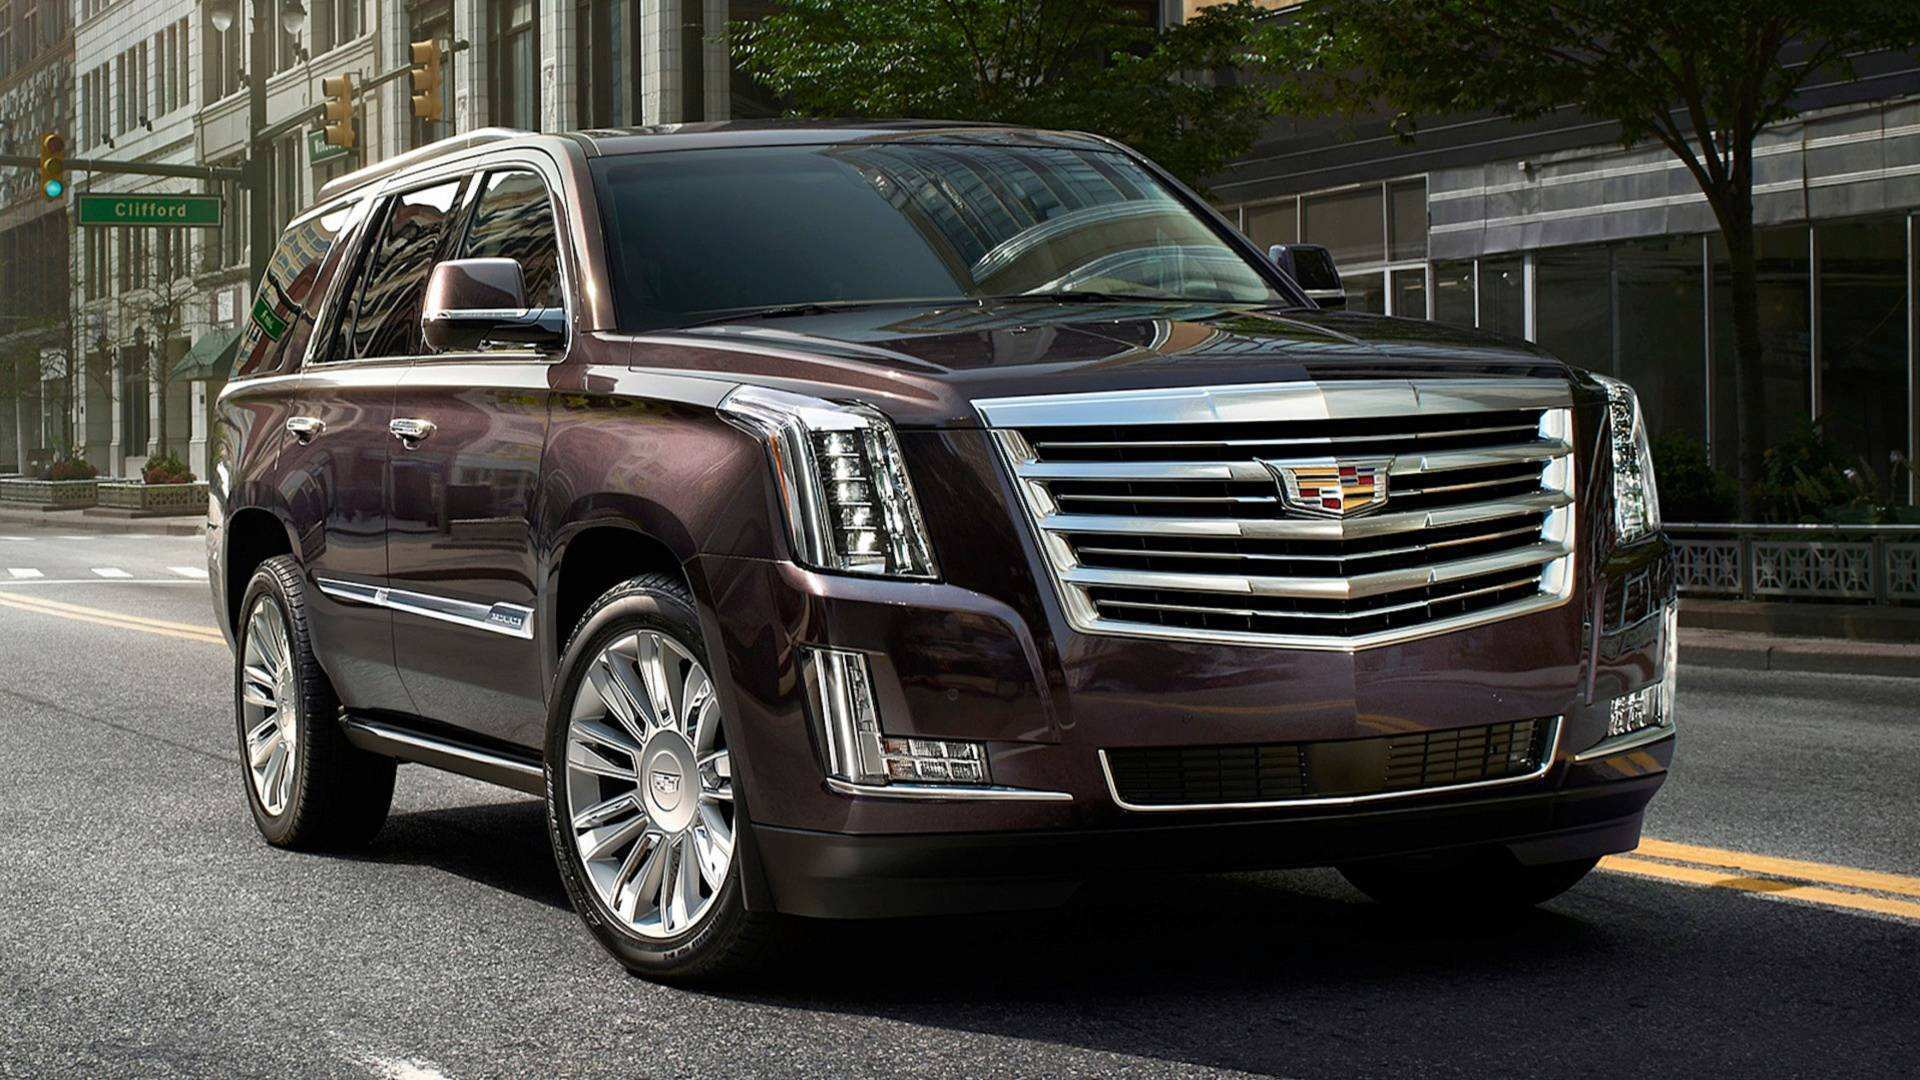 32 Concept of New 2020 Cadillac Escalade Redesign and Concept for New 2020 Cadillac Escalade